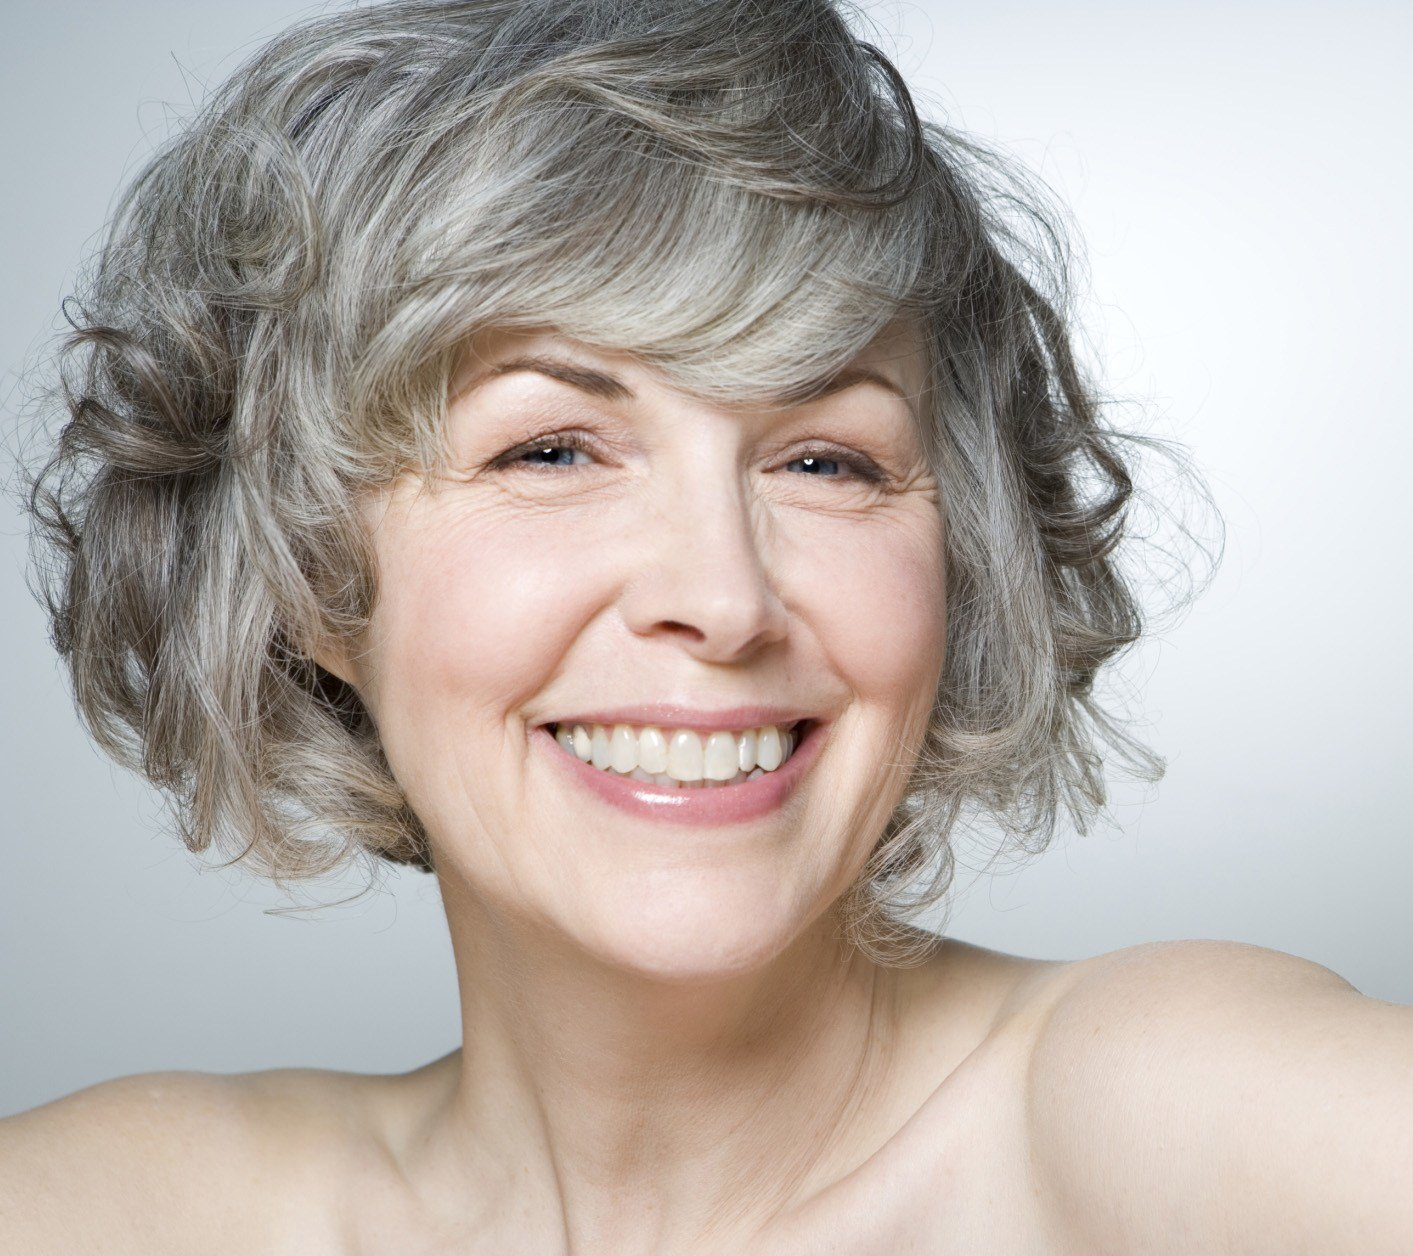 New Coloring Gray Hair Top Tips Products Naturallycurly Com Ideas With Pictures